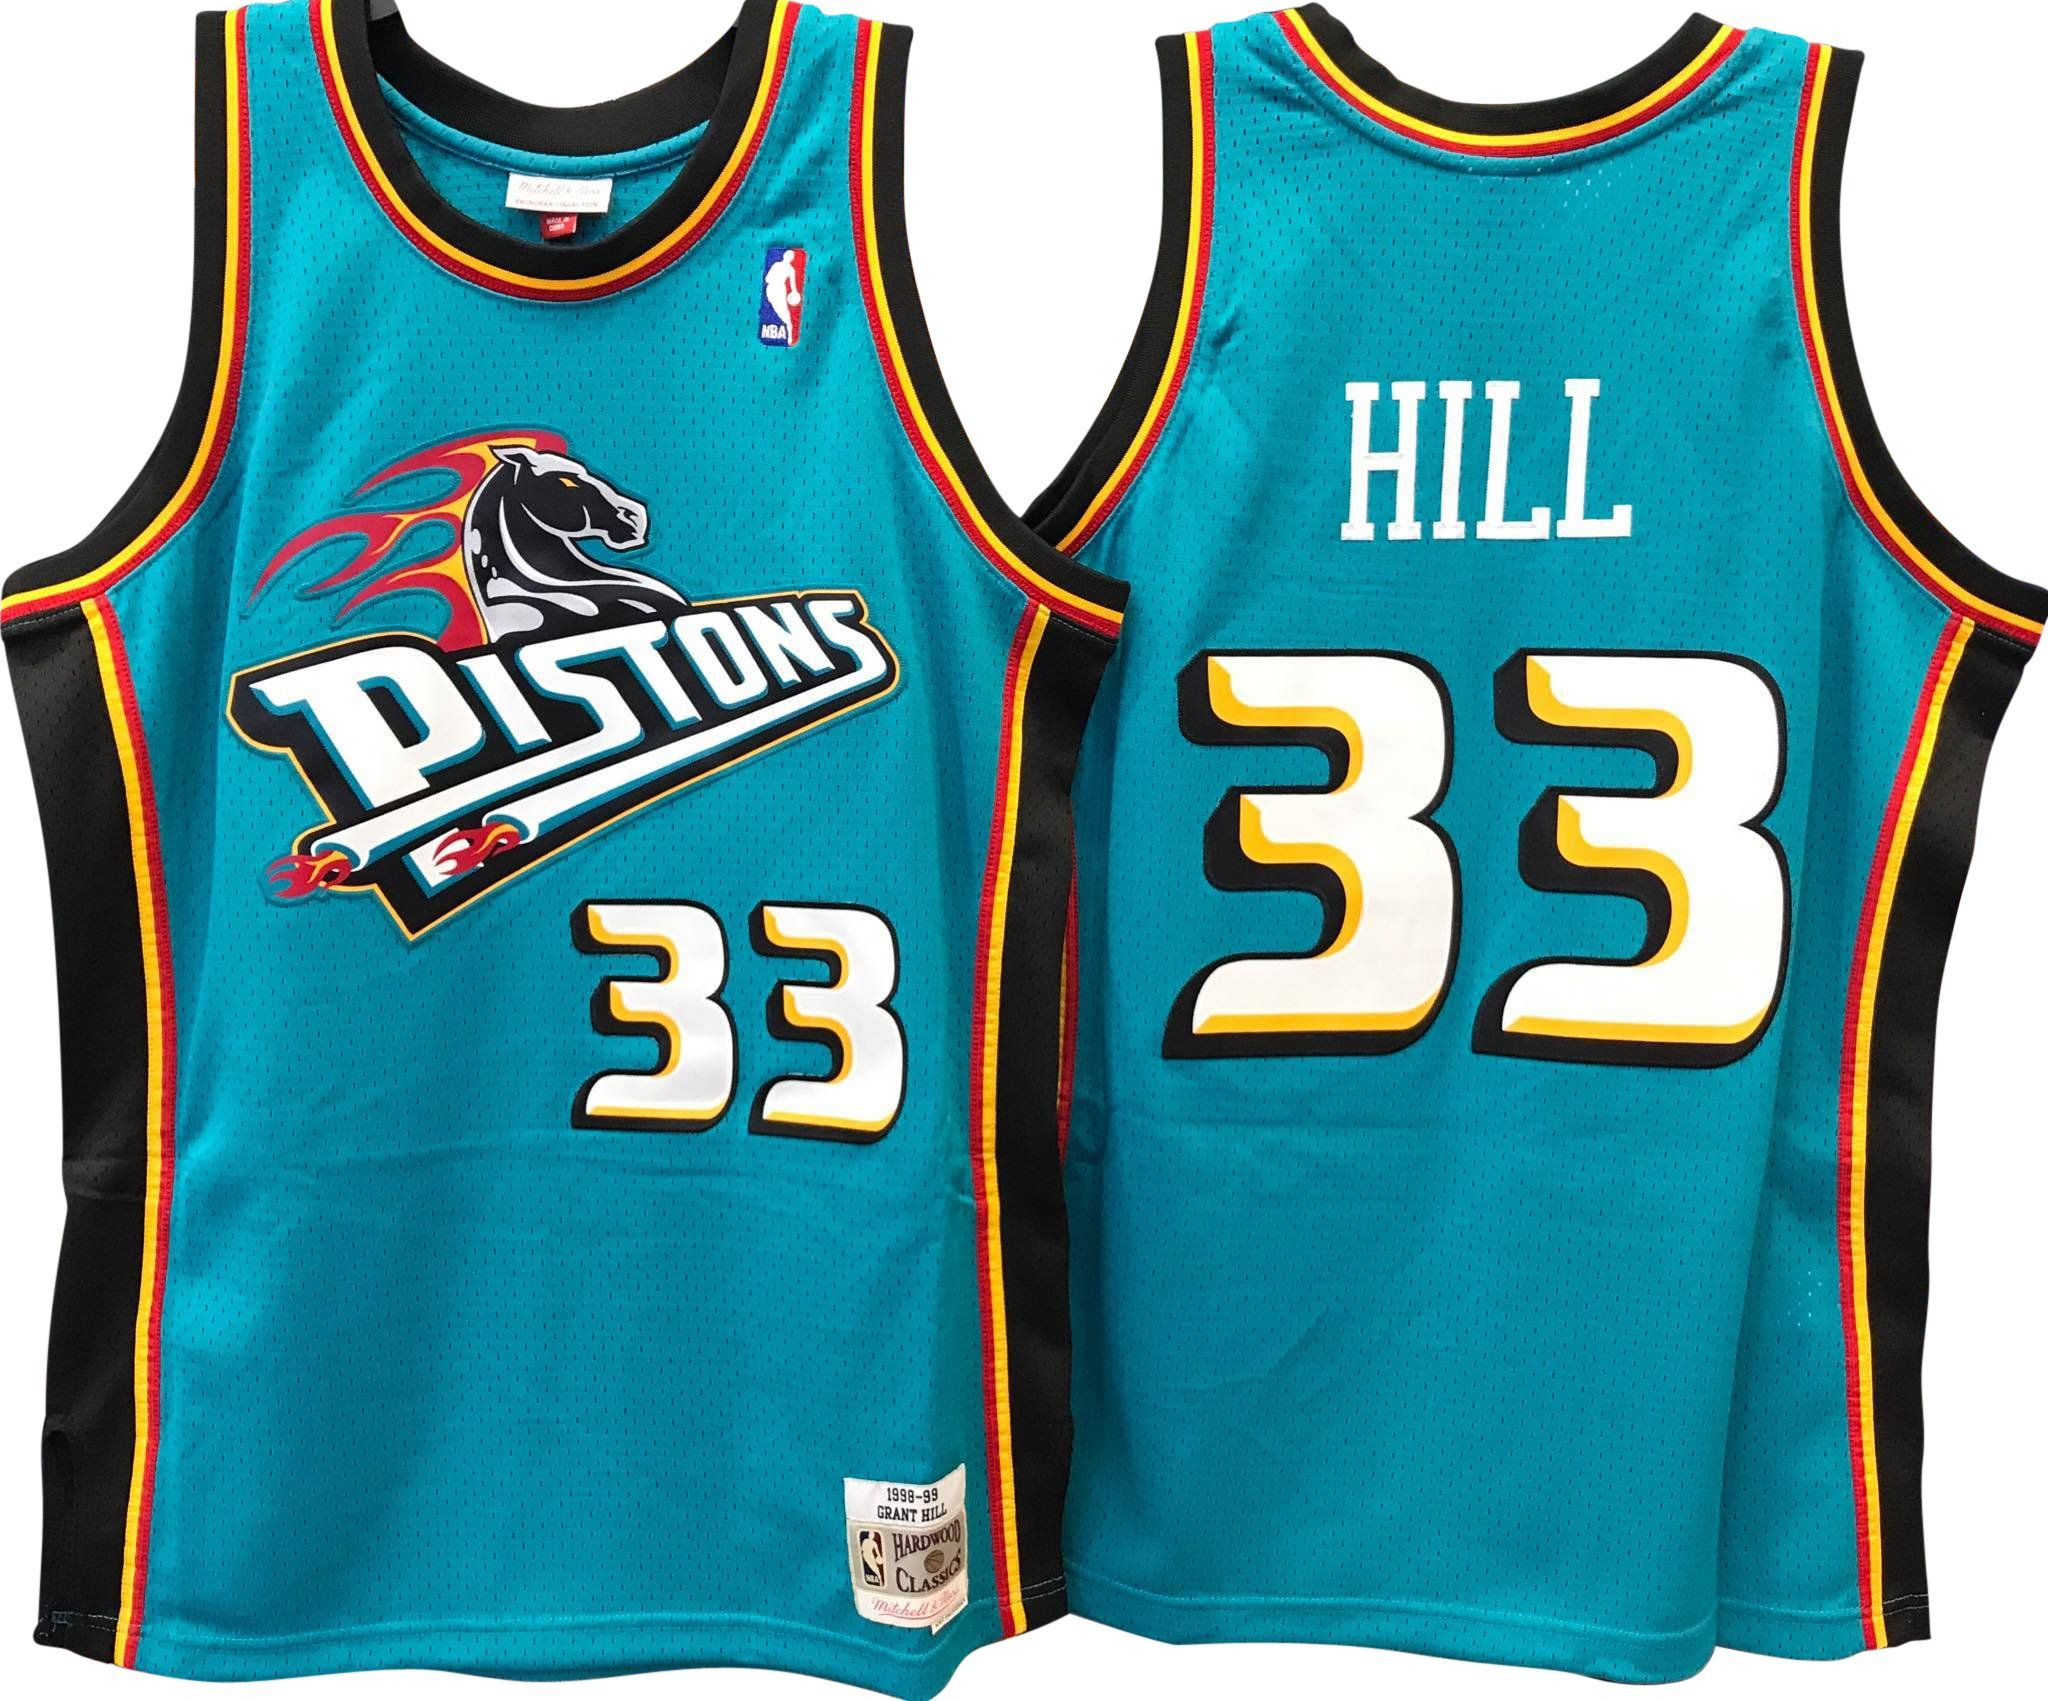 7910a7c81 GRANT HILL DETROIT PISTONS NBA HARDWOOD CLASSICS THROWBACK SWINGMAN JERSEY